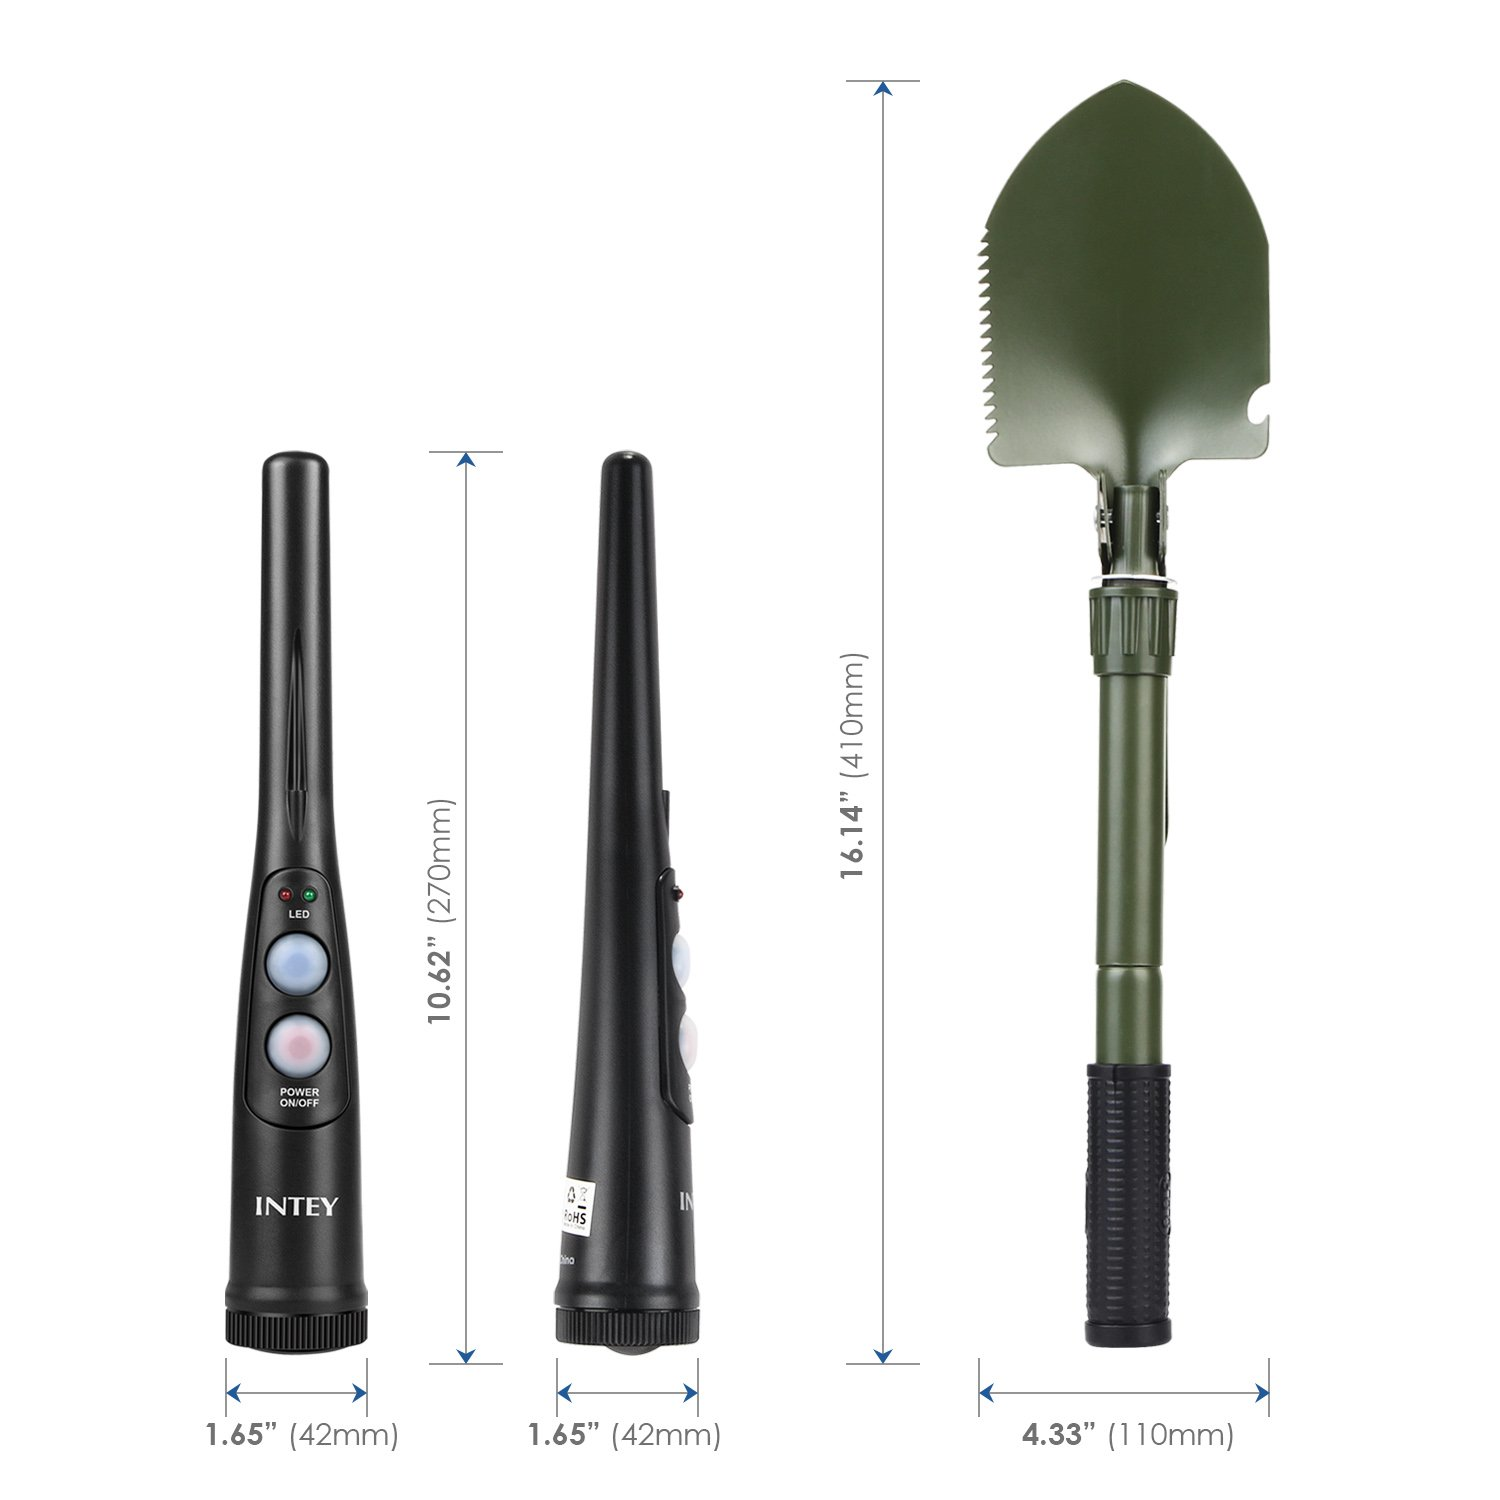 intey Handheld Manejable Pro Pointer Pinpointer Detector de metales resistente al agua IP65 con una pala plegable y bolsa: Amazon.es: Bricolaje y ...